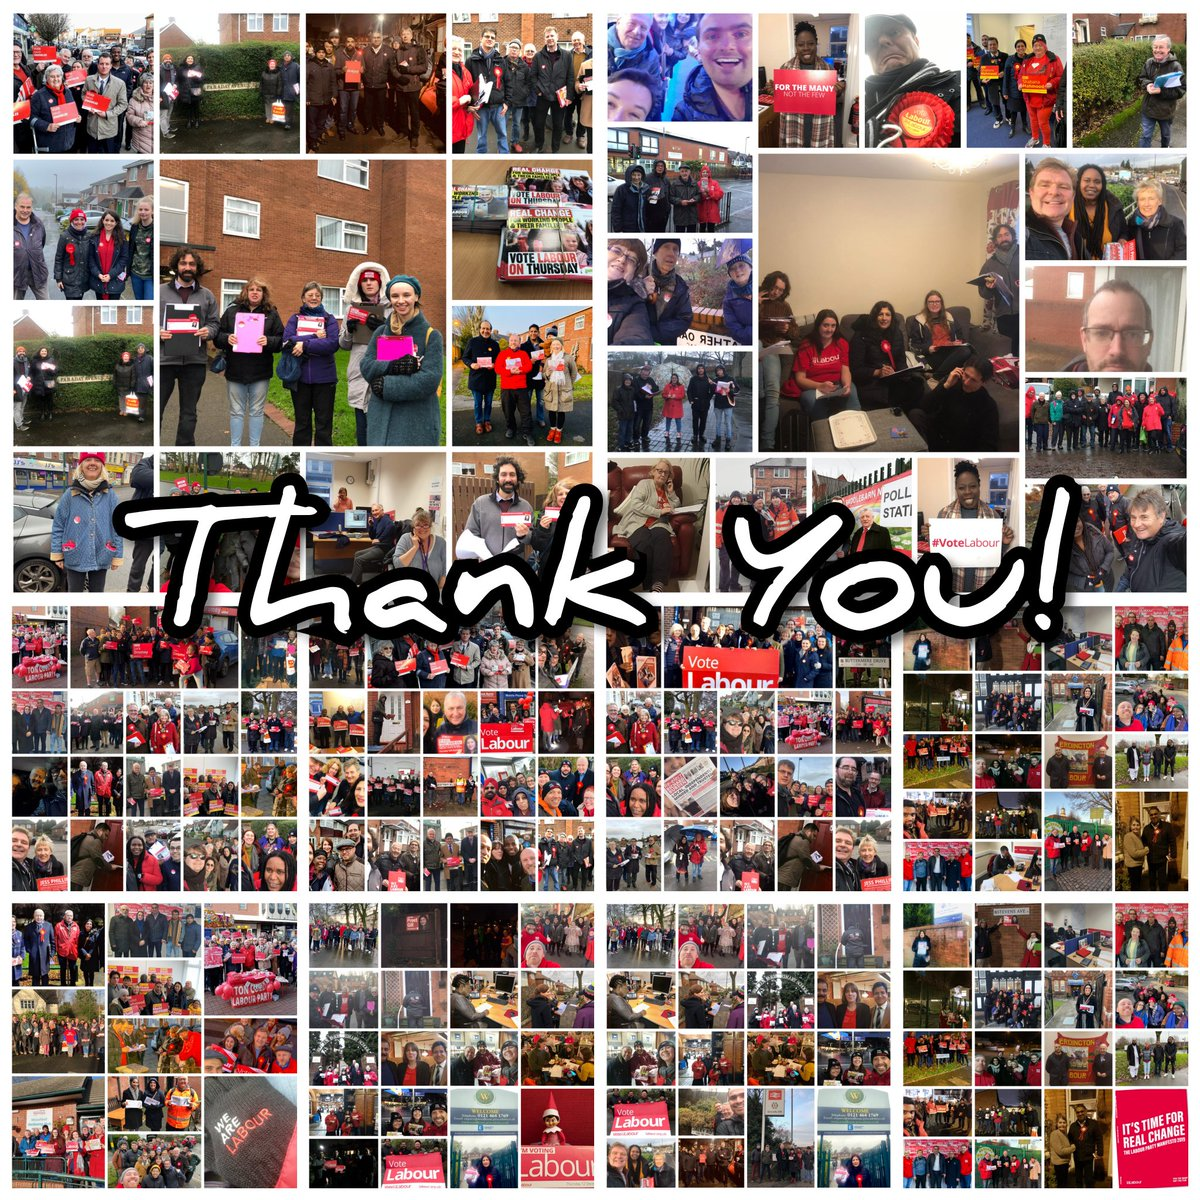 To all the @UKLabour activists, unions, supporters & friends who campaigned across the city for @TahirAliMP @ShabanaMahmood @PreetKGillMP @jessphillips @JackDromeyMP @LiamByrneMP @khalid4PB @steve_mccabe @RichardBurden27 @KnowlesSCLabour wed like to say Thank you very much!